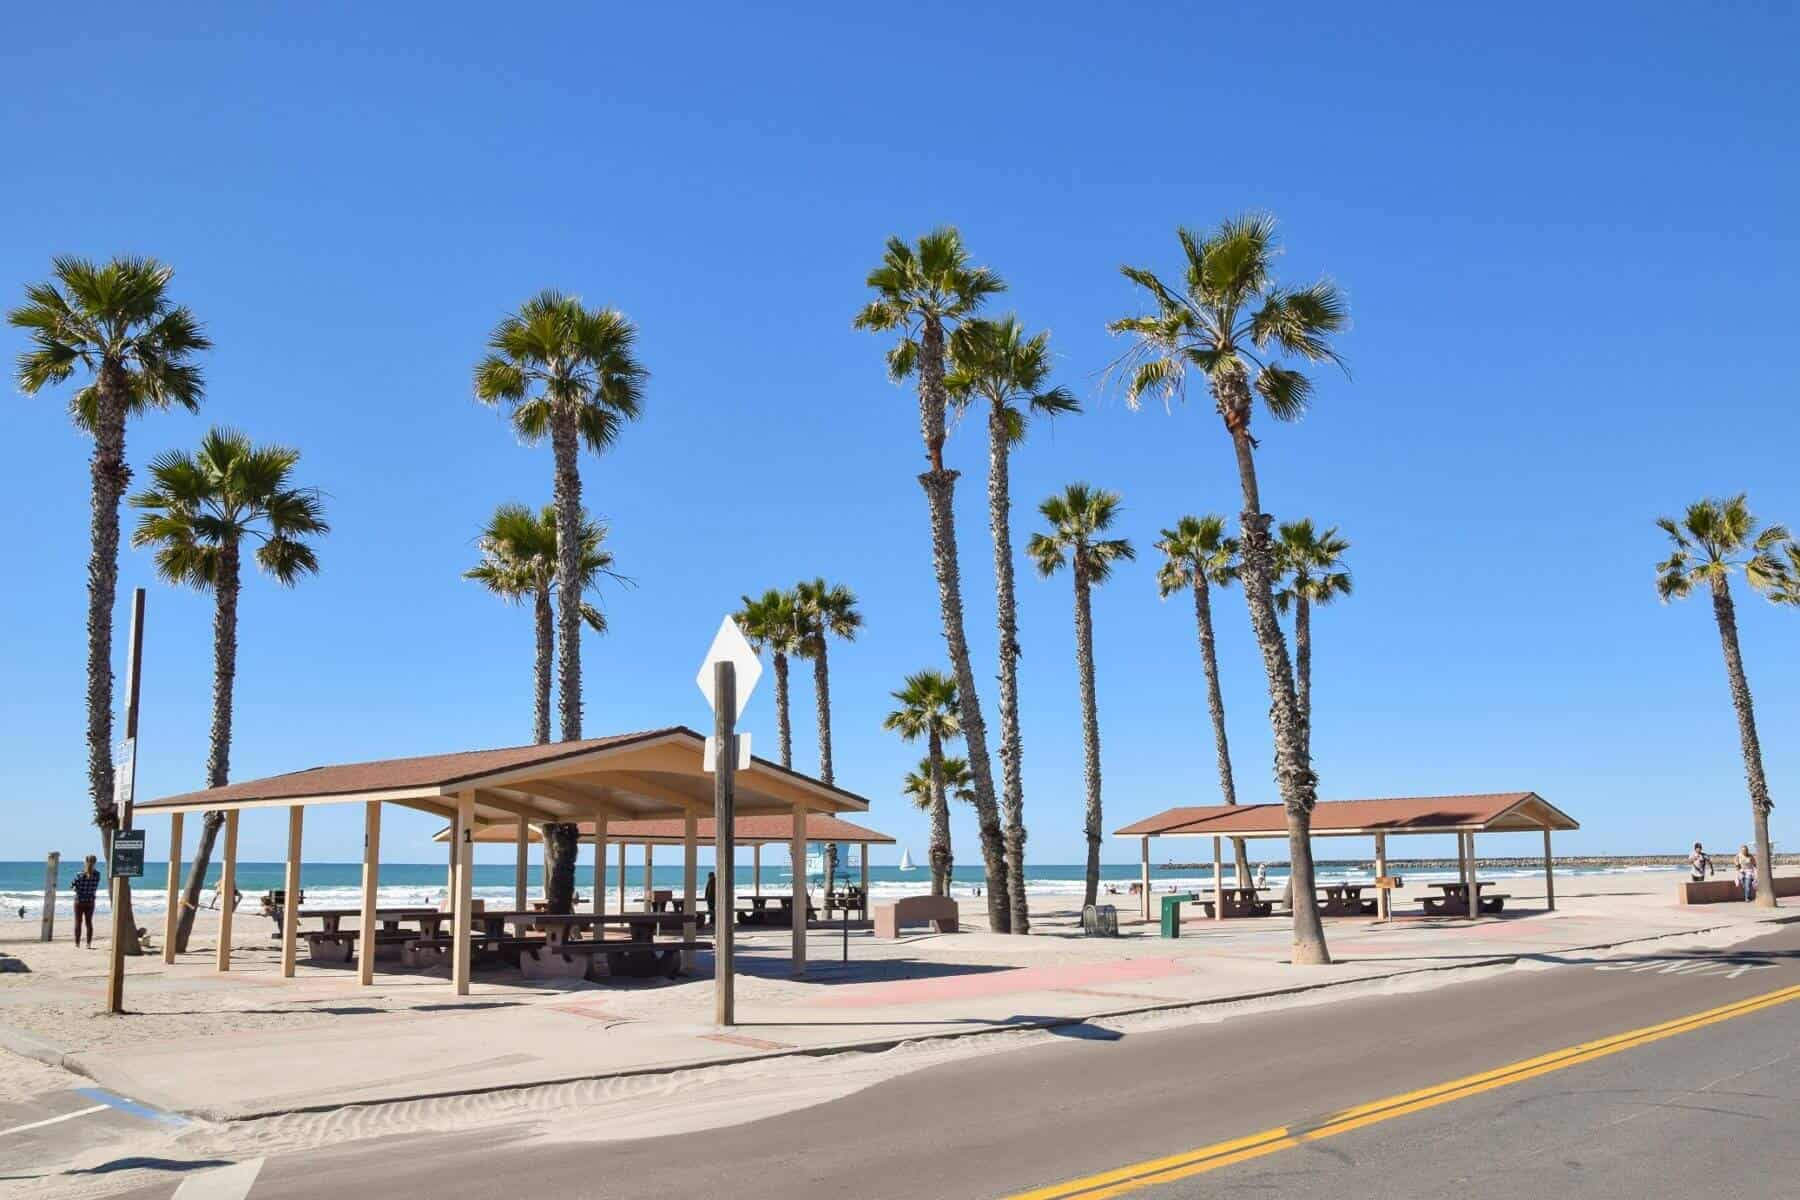 Oceanside Harbor Beach